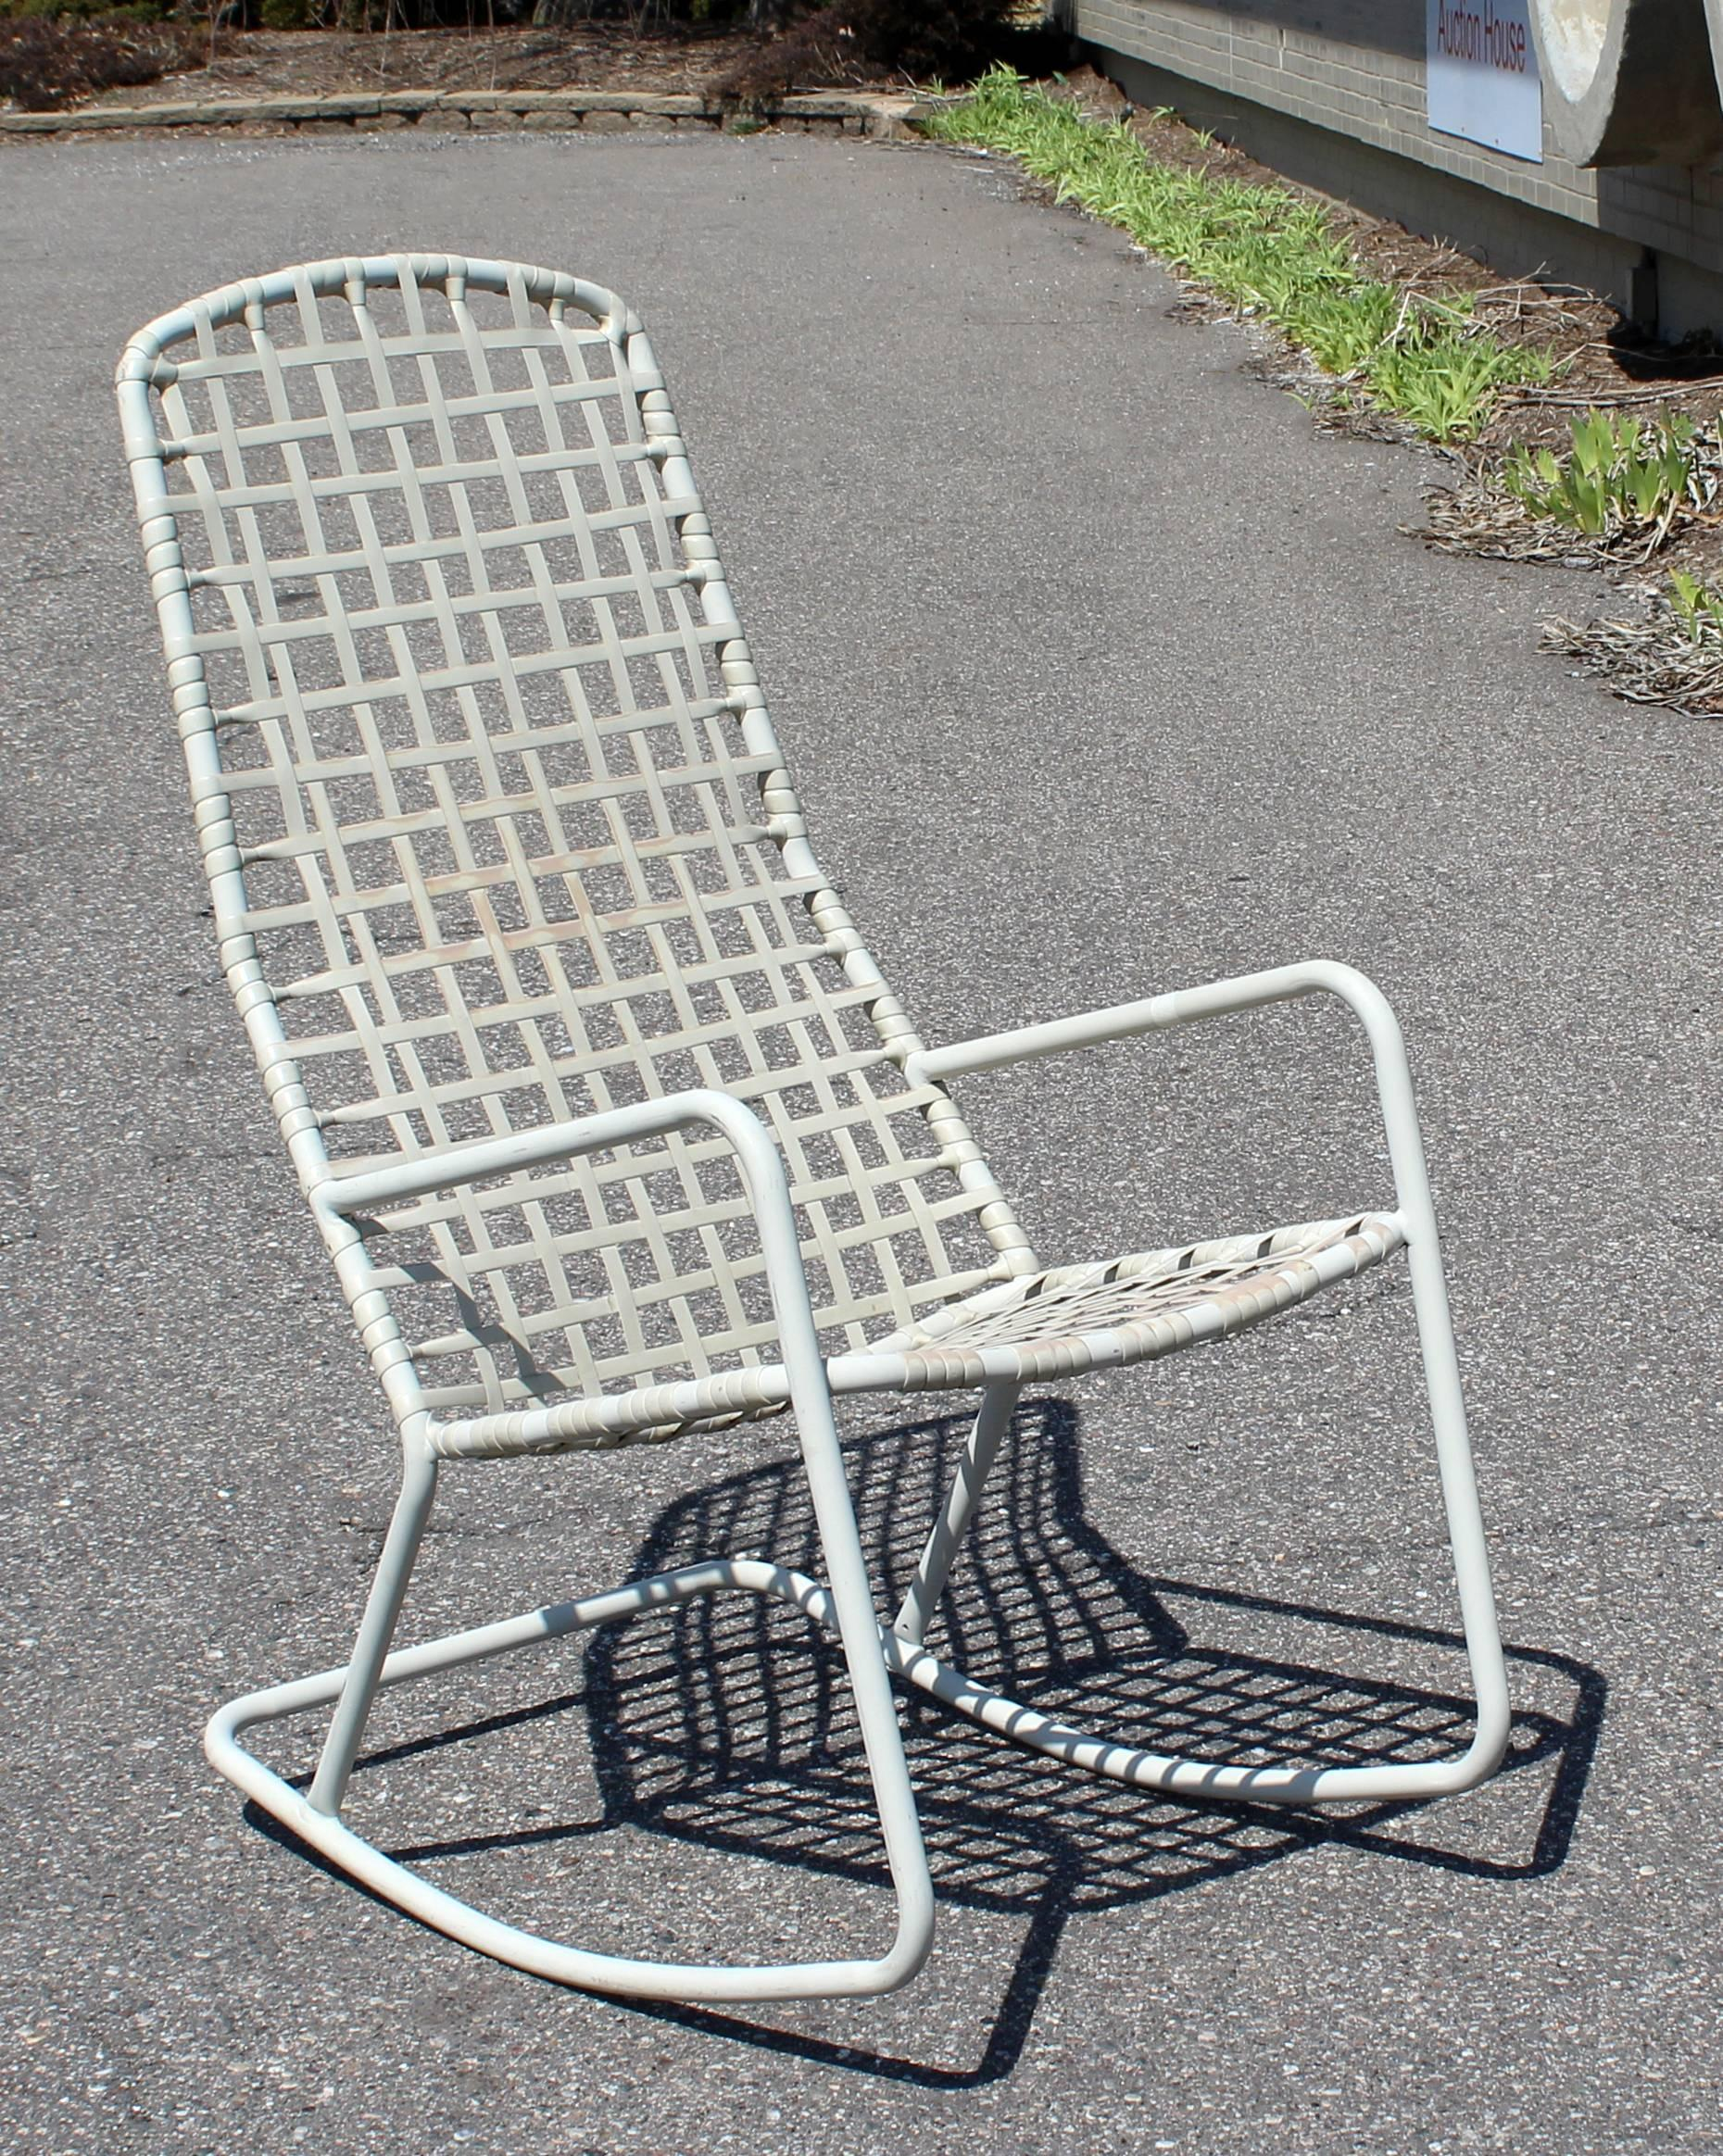 For Your Consideration Is An Outdoor Patio Rocking Chair By Brown Jordan  From The Kantan Series